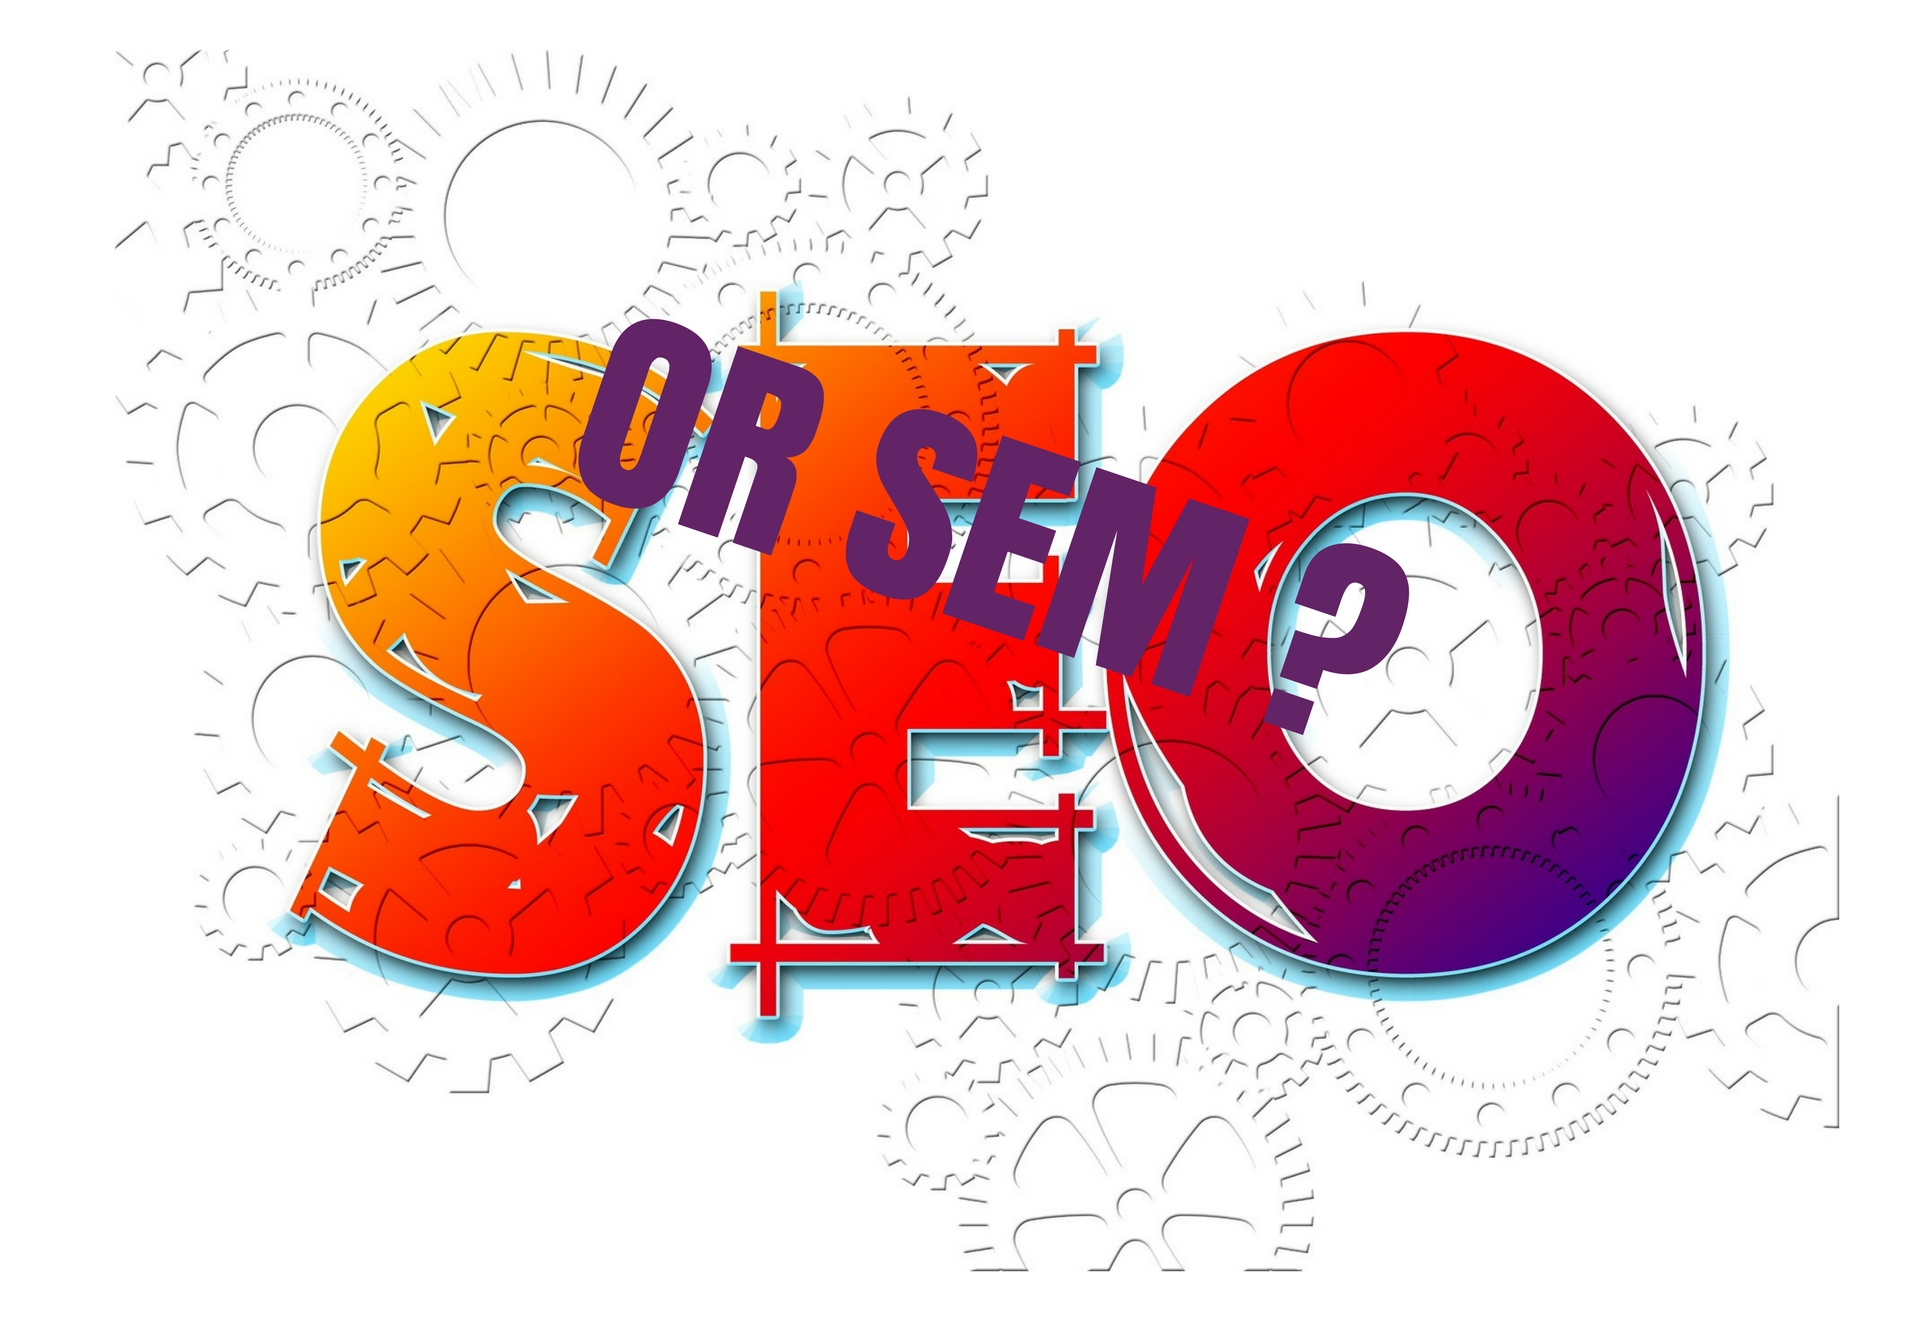 Search Engine Optimization (SEO) vs. Search Engine Marketing (SEM) – Which is best?